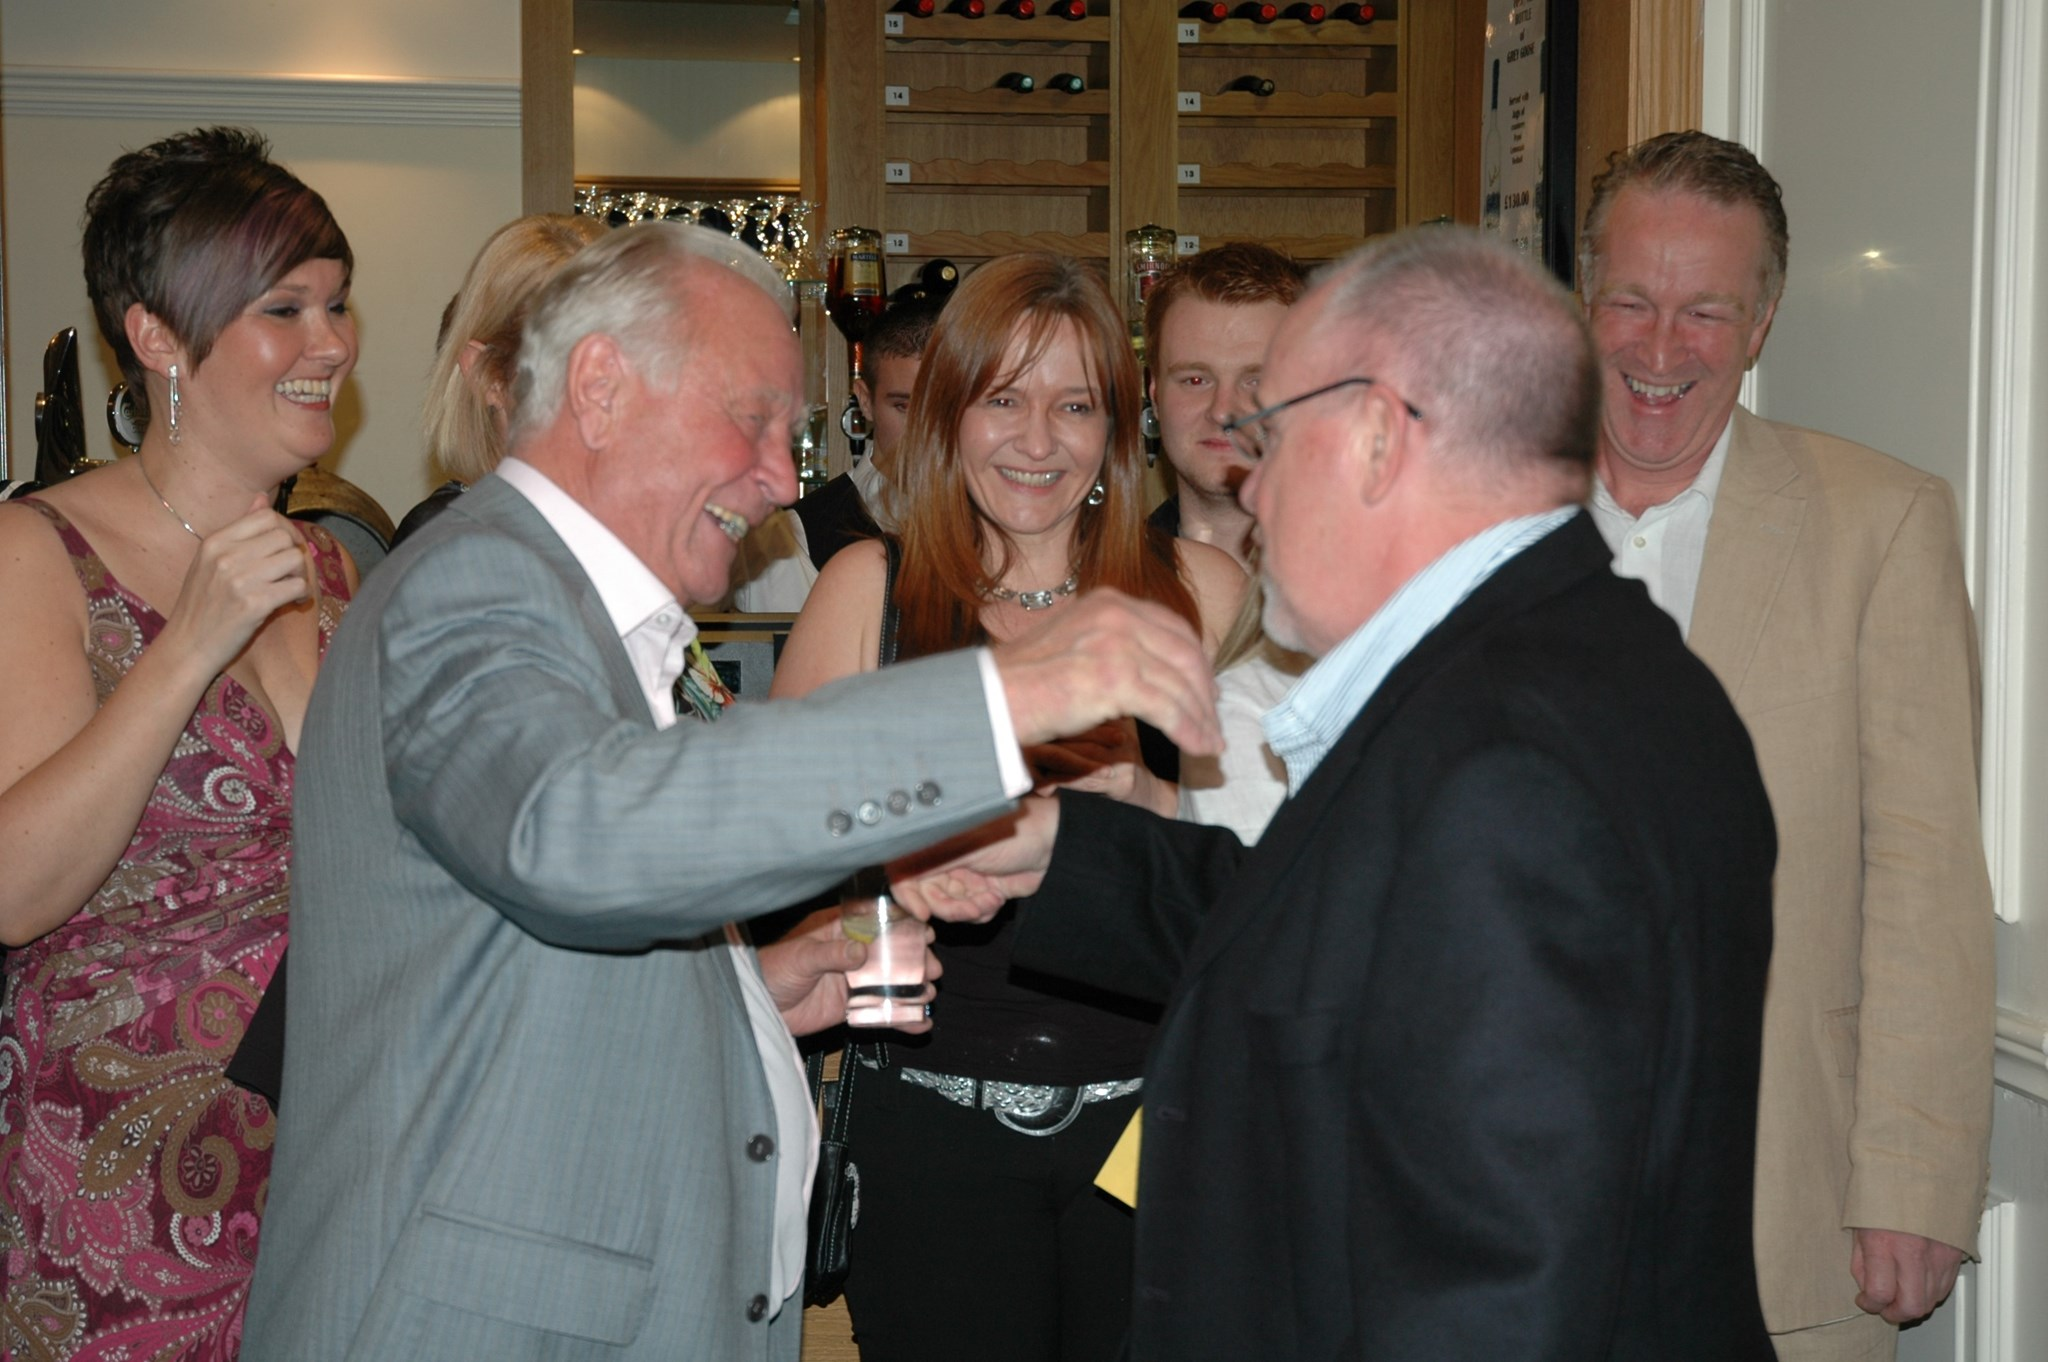 What a lovely surprise to see Hughie at my retirement party!